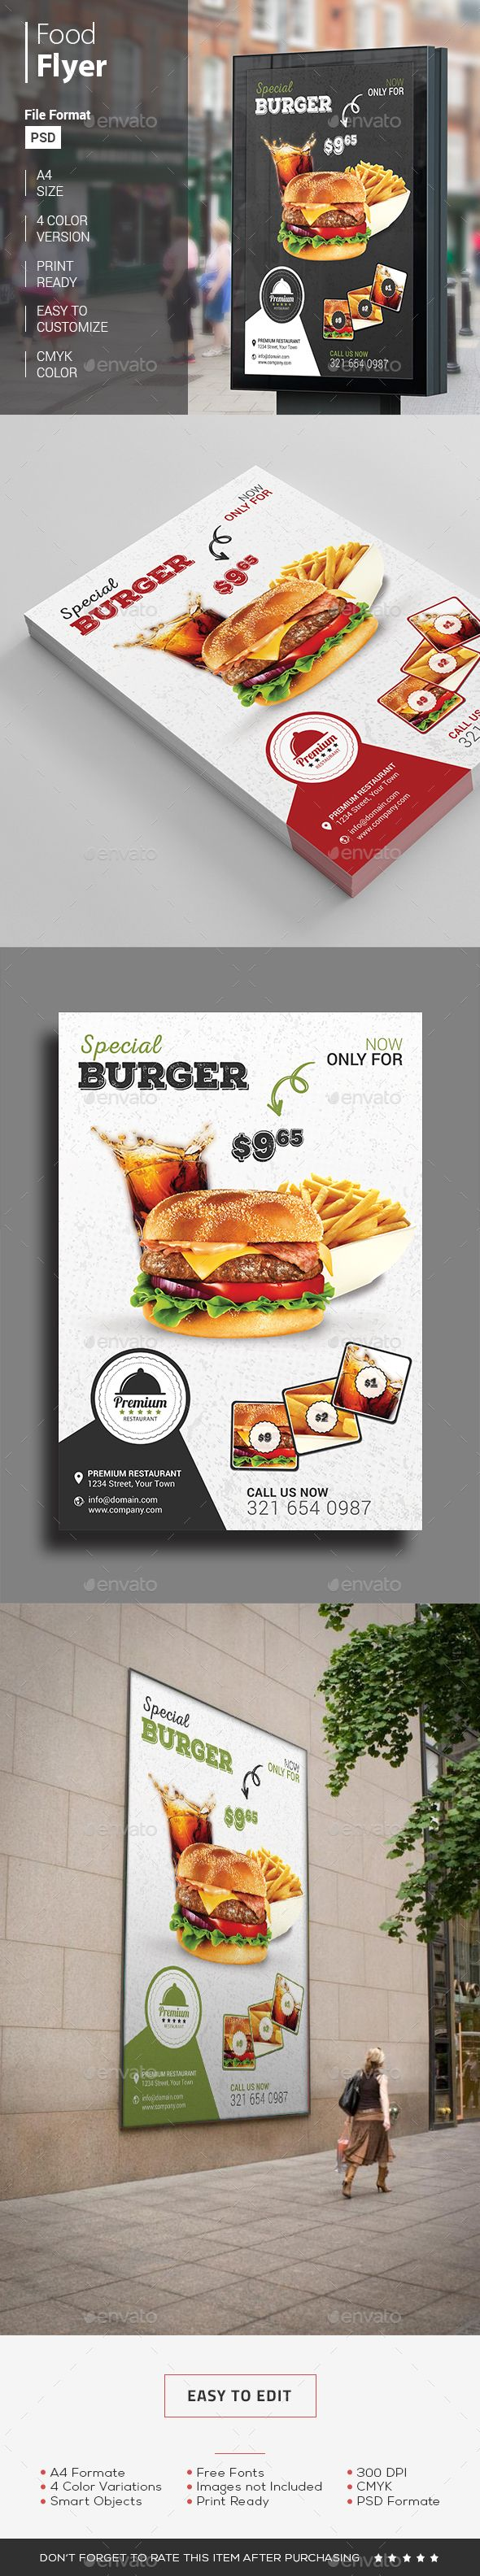 Awesome Save on Foods Flyer that can be used for restaurant, fast food or food truck businesses. A perfect Food Ad Template for weekly adds. A great alternative for food sale flyer template.  http://graphicriver.net/item/food-flyer/14379295?ref=themedevisers